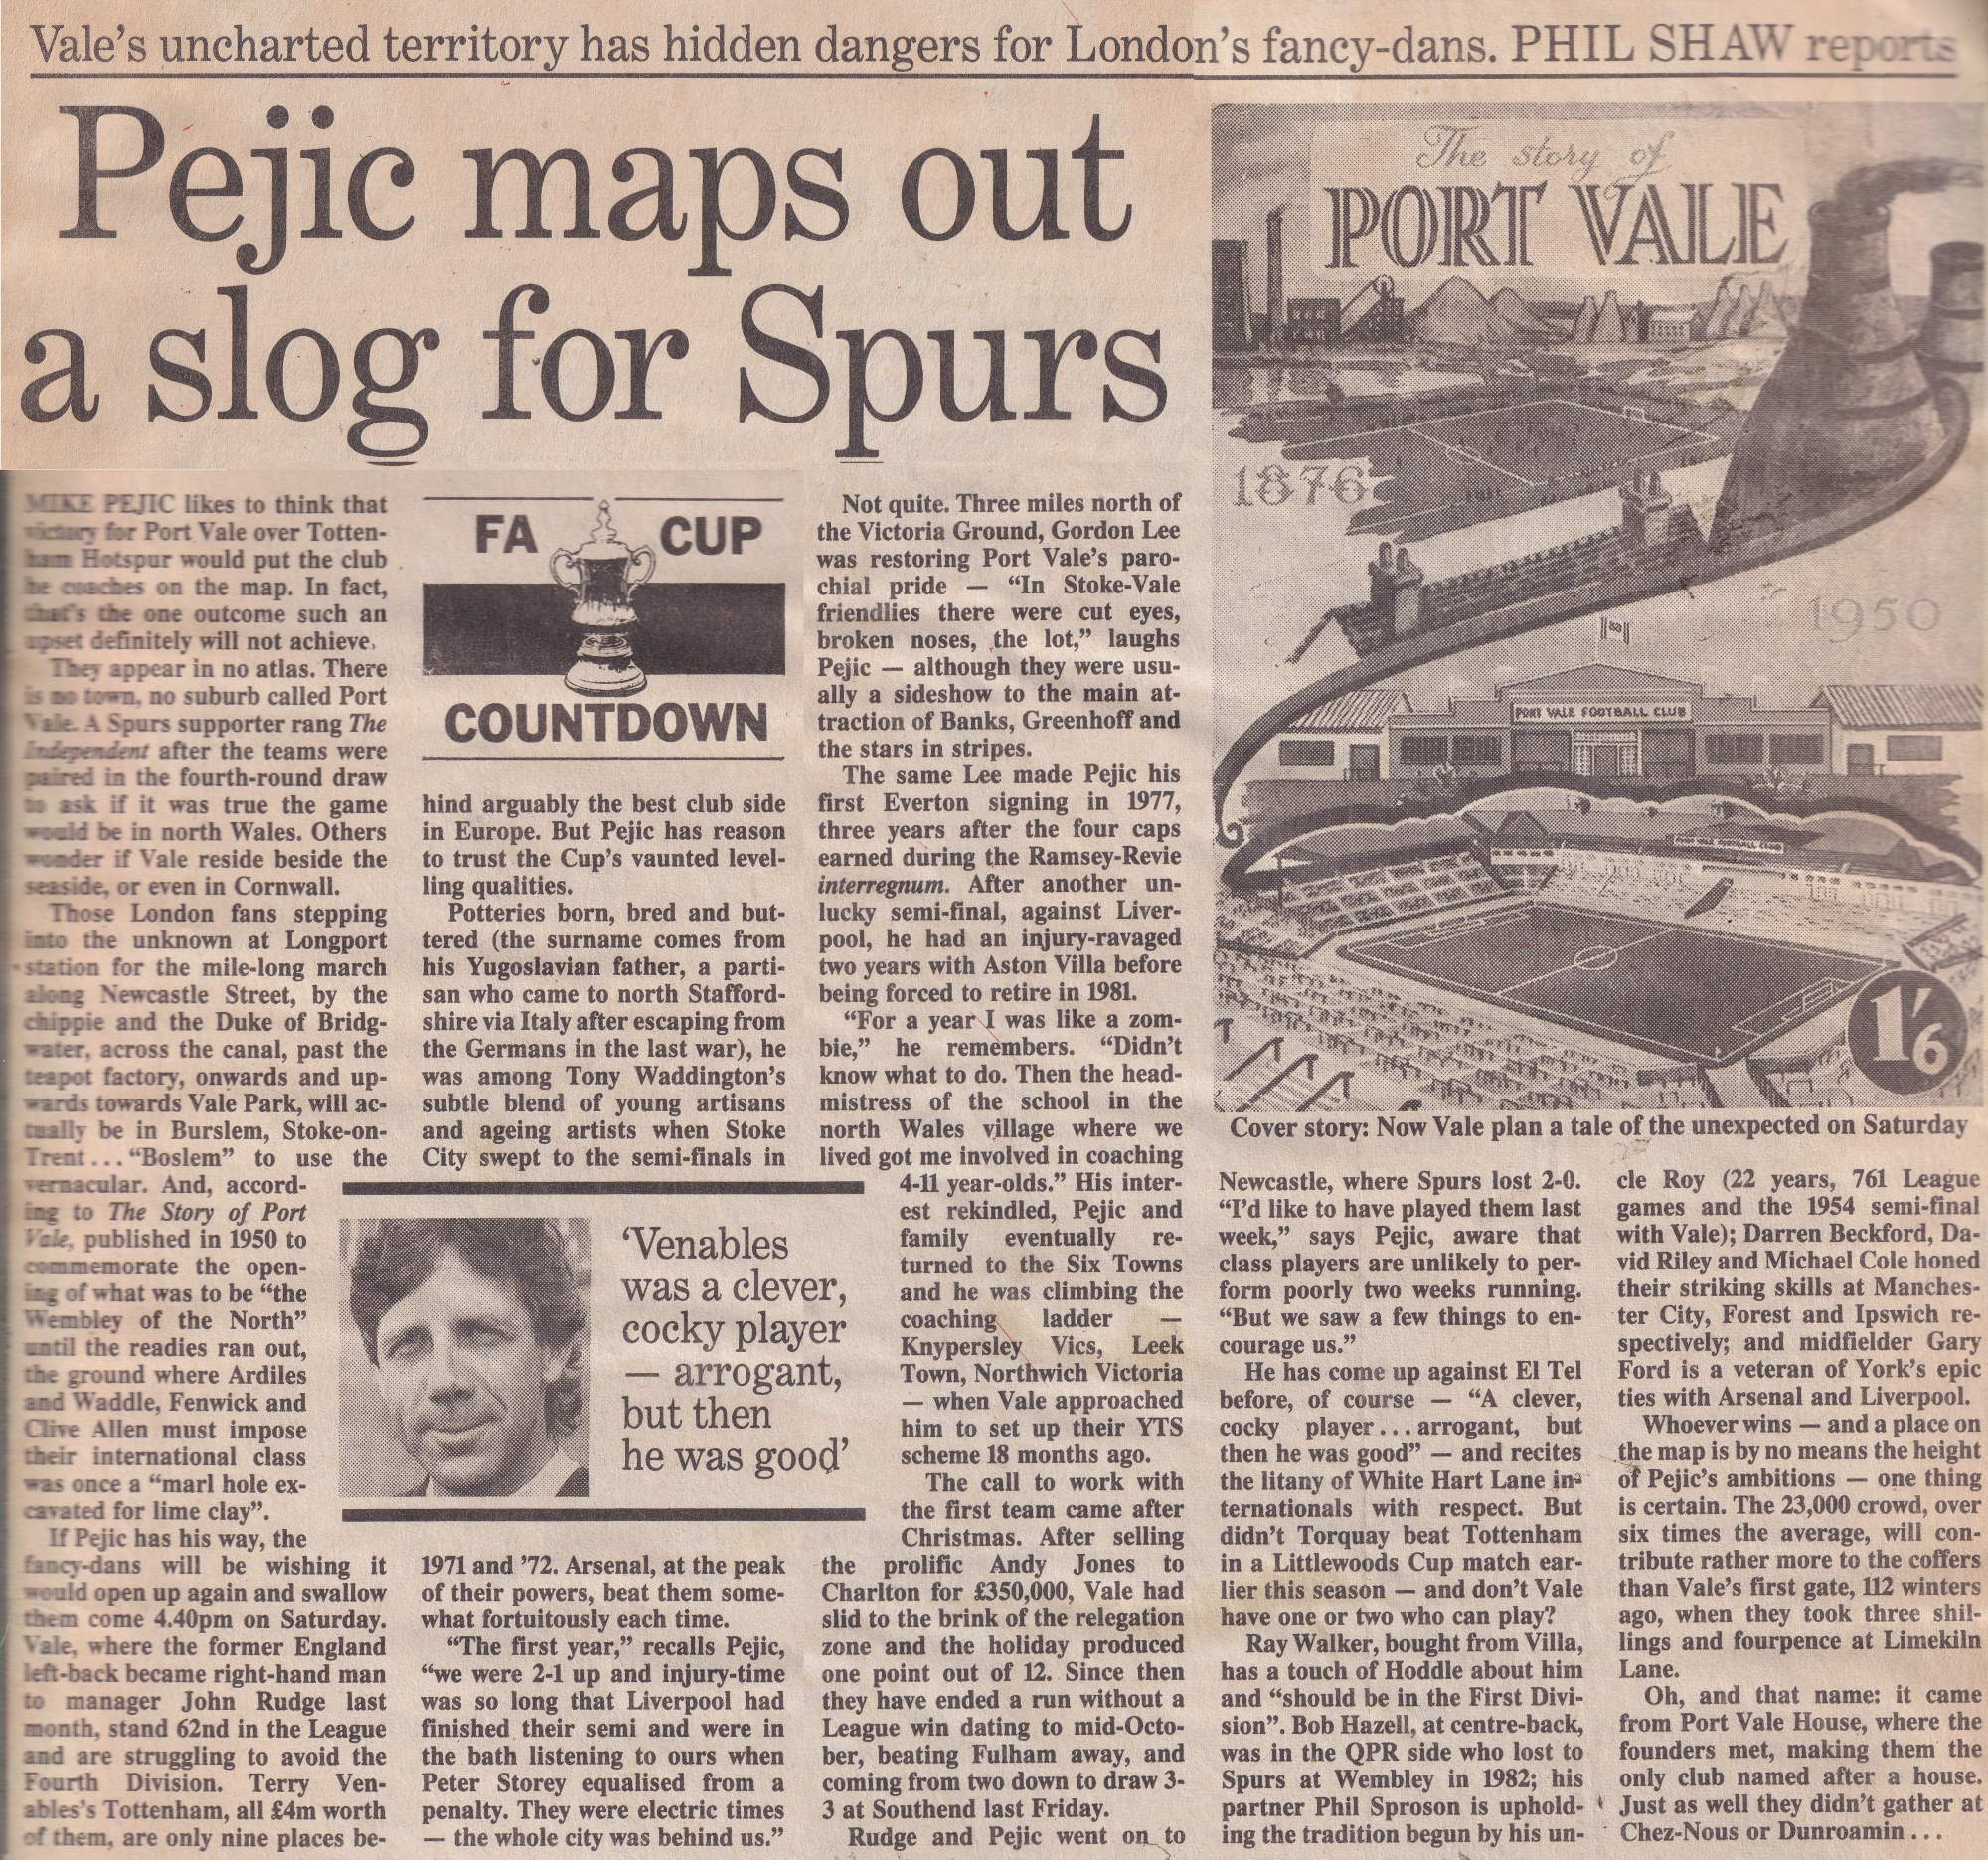 Independent preview of the Port Vale v Tottenham Hotspur FA Cup game 1988